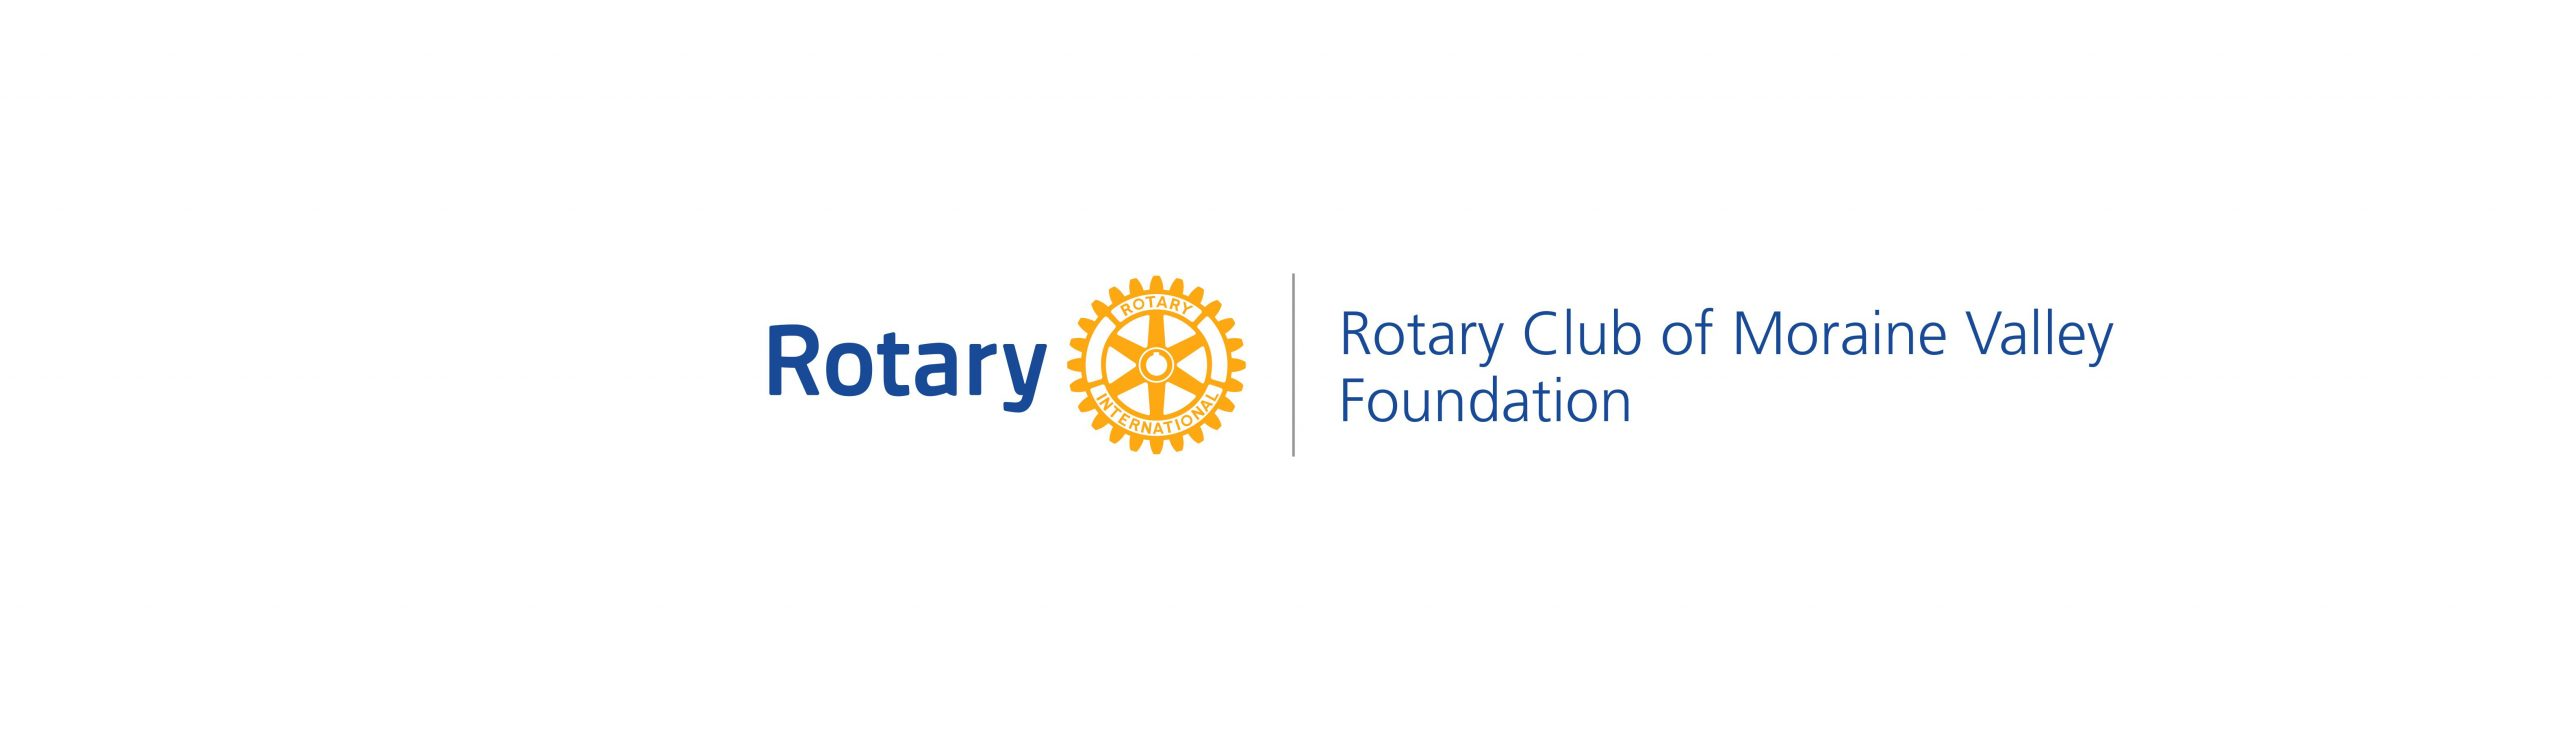 Match a Meal Program – Rotary Club of Moraine Valley and El Gallo de Oro